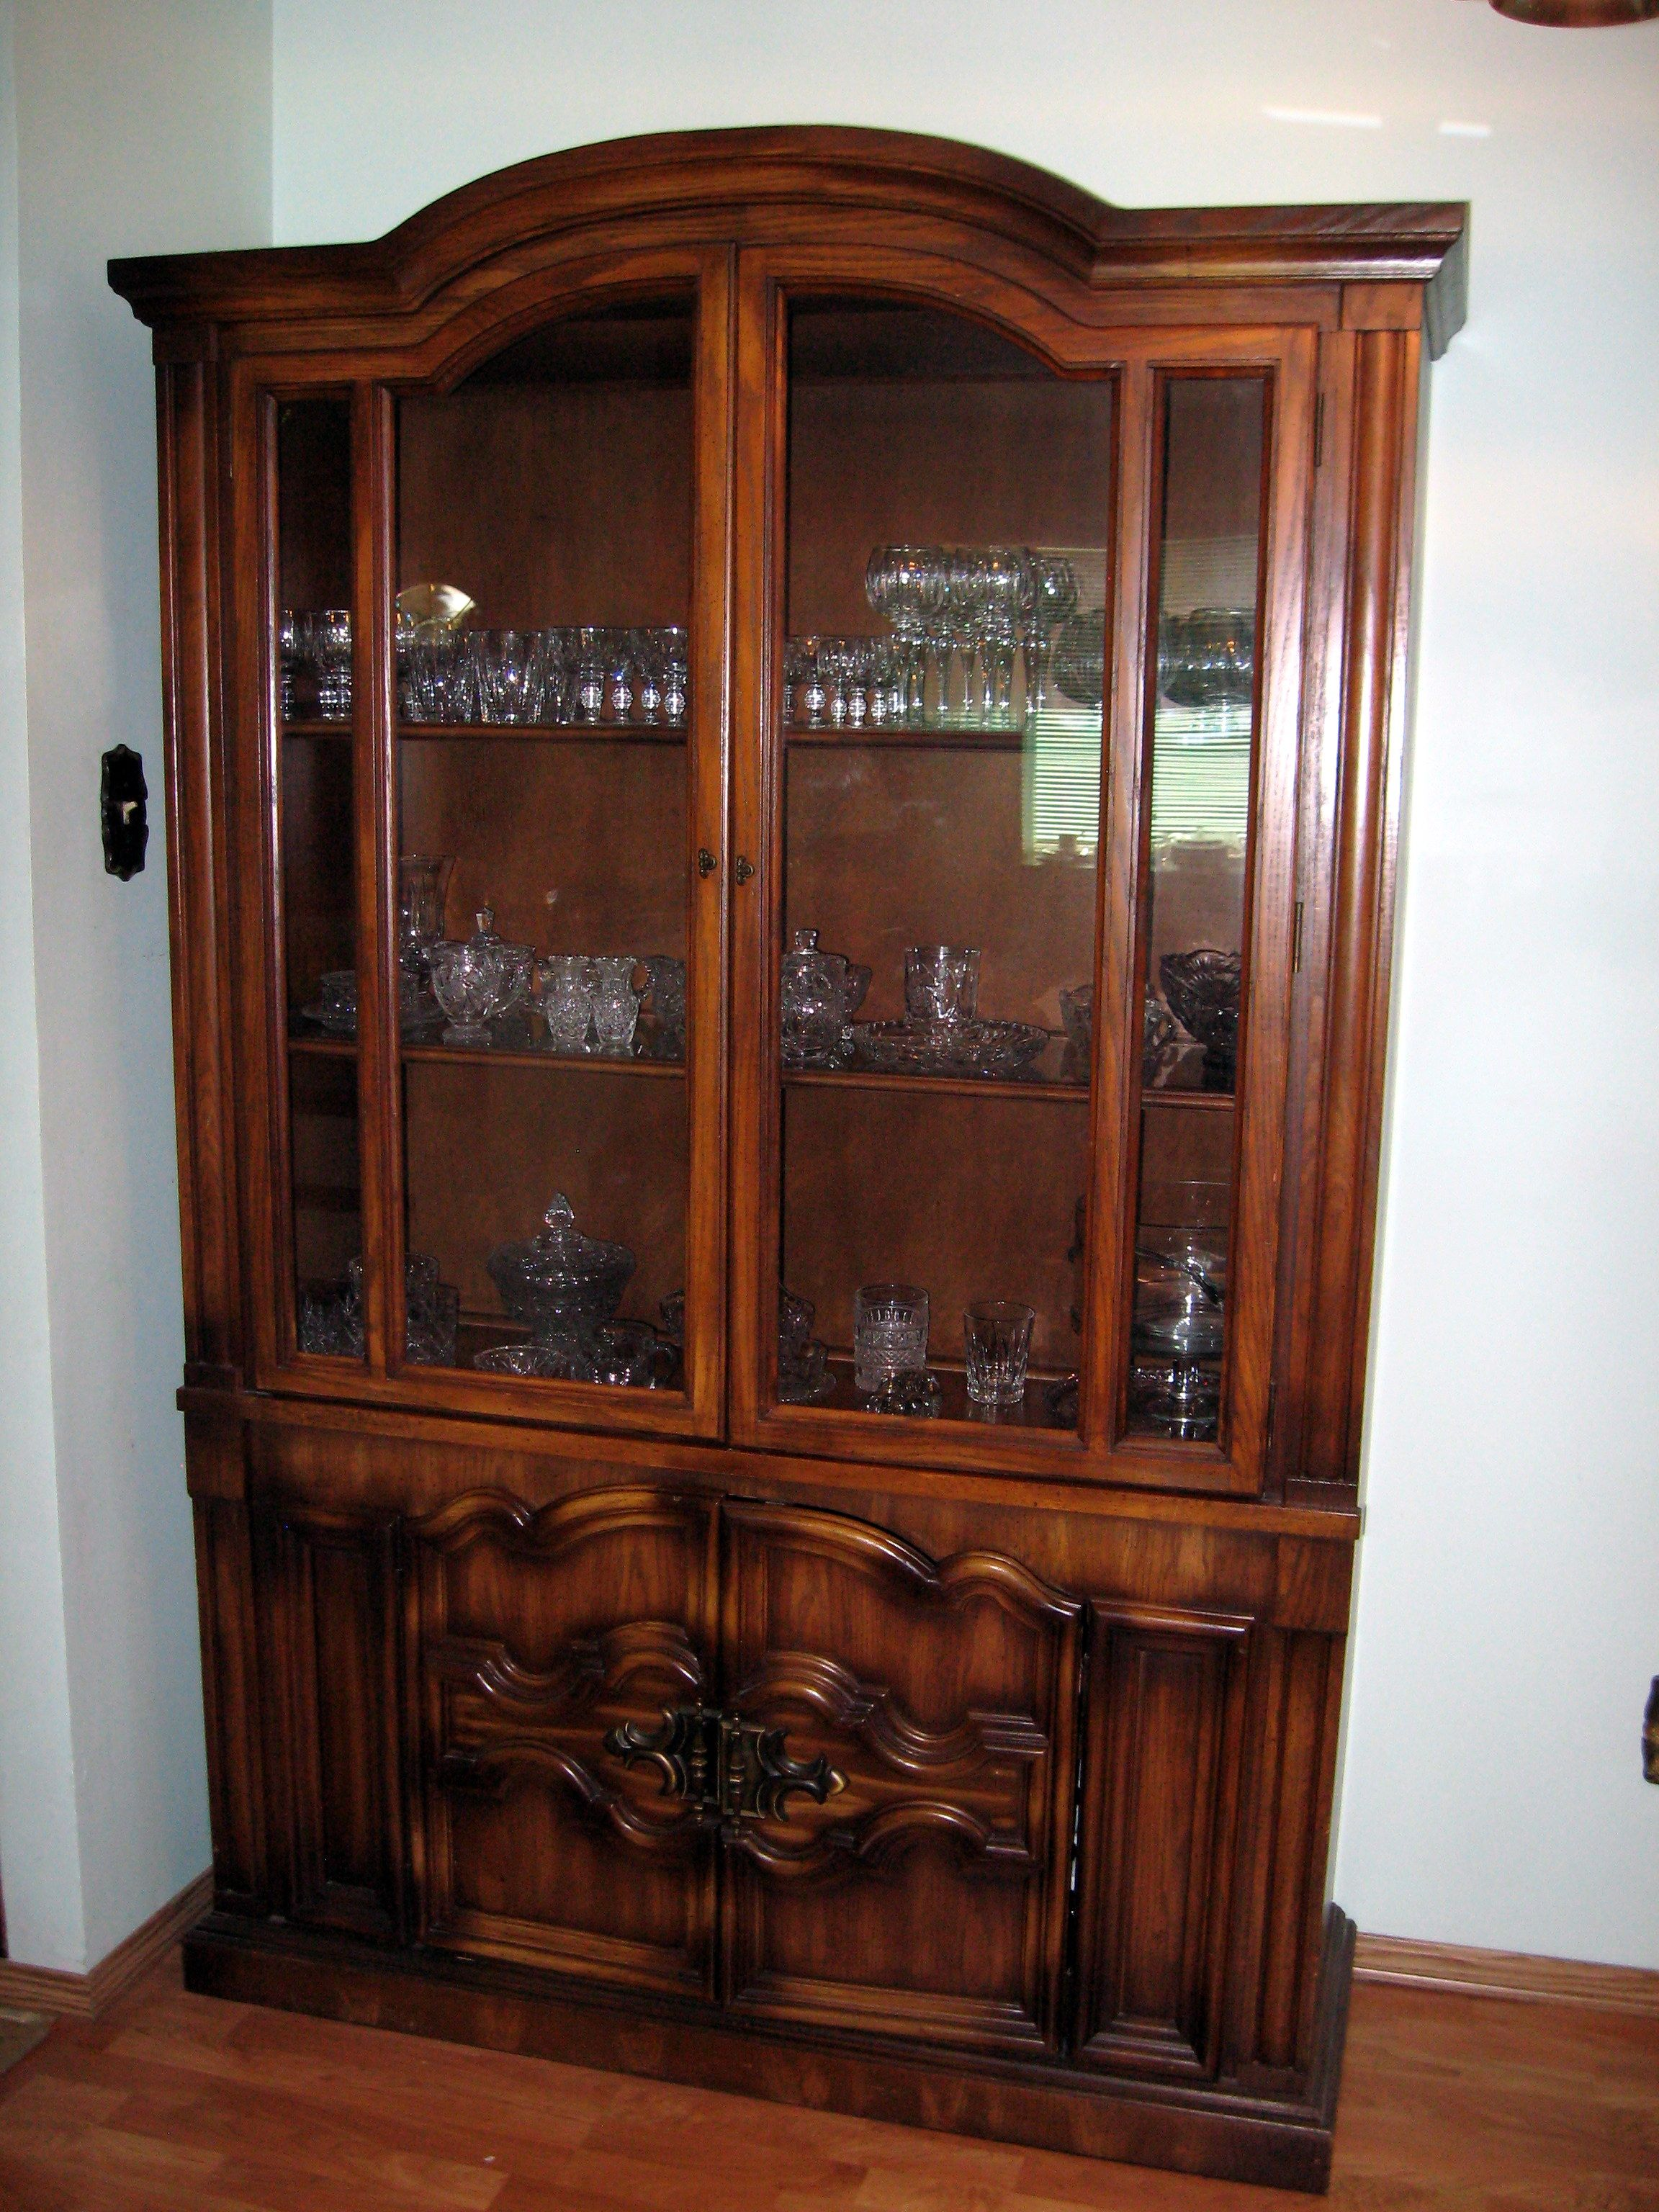 Beau Wood Cabinets With Glass Doors   Some Are Shaped Like Others And  Butterflies You Canu0027t Even See. Some Open Using A Pivot And